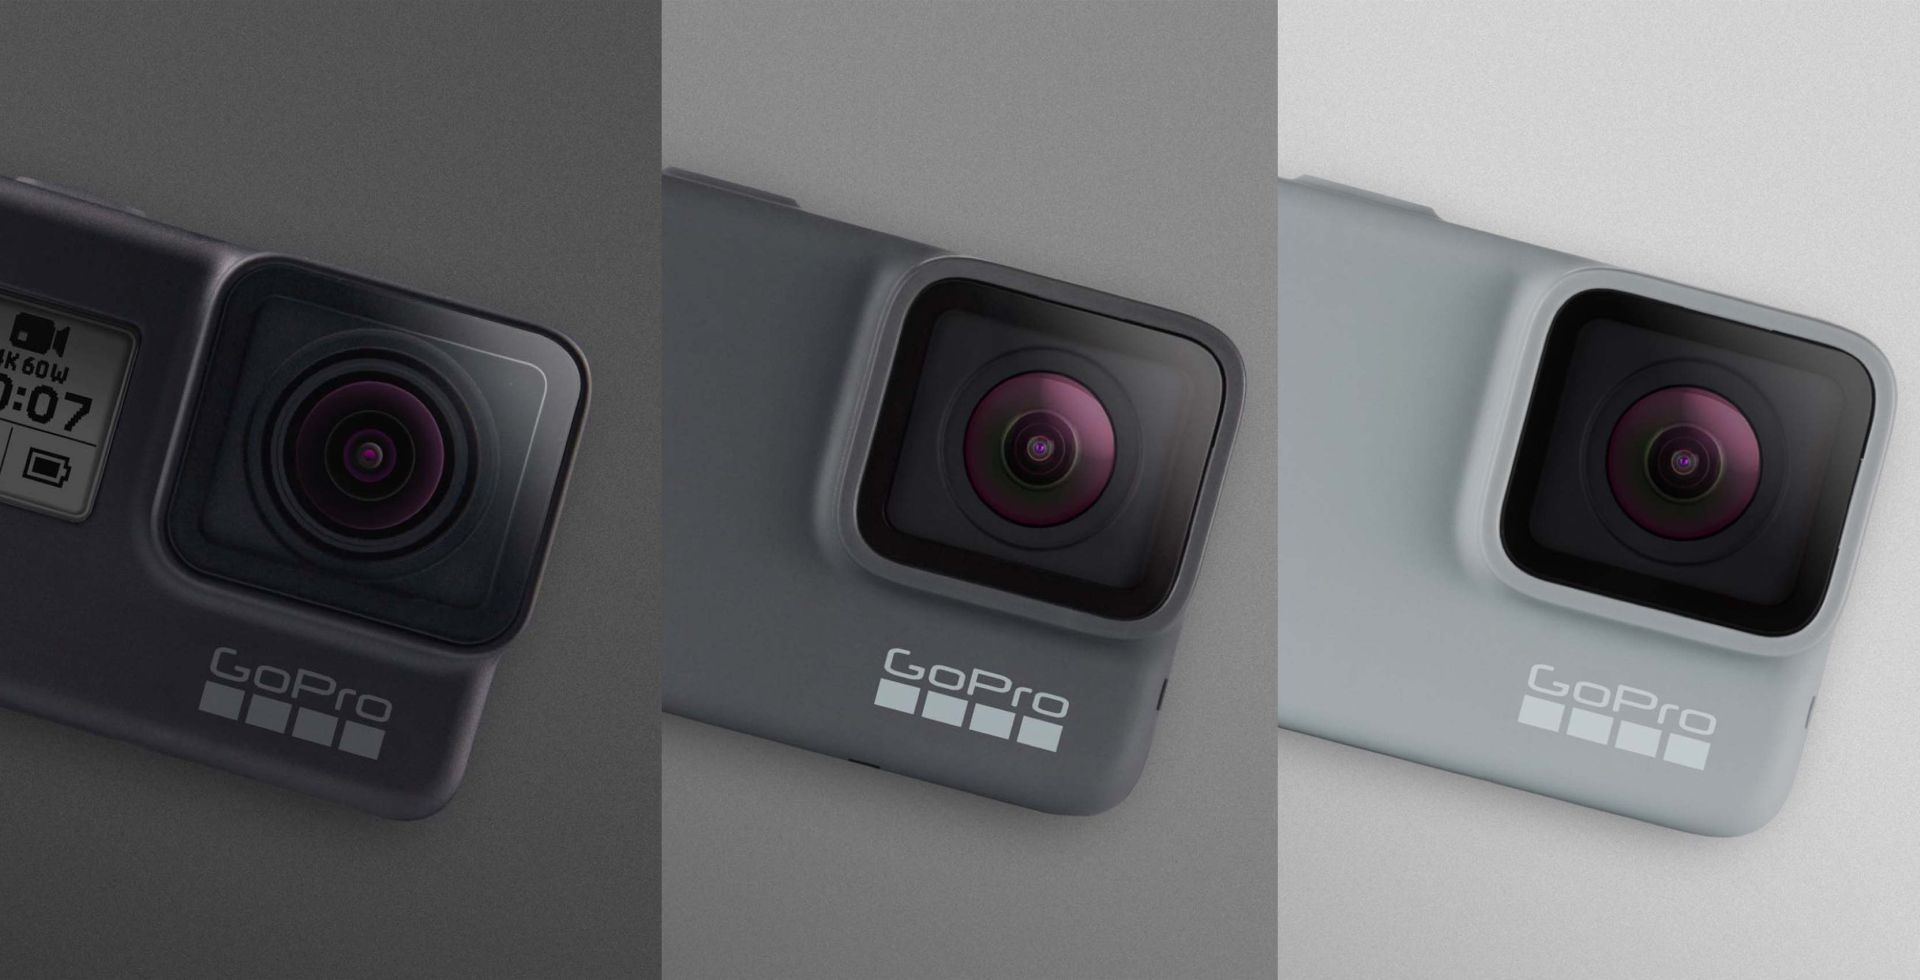 GoPro HERO7 Cameras Receive New Firmware - Get Versions 2 0 and 1 61